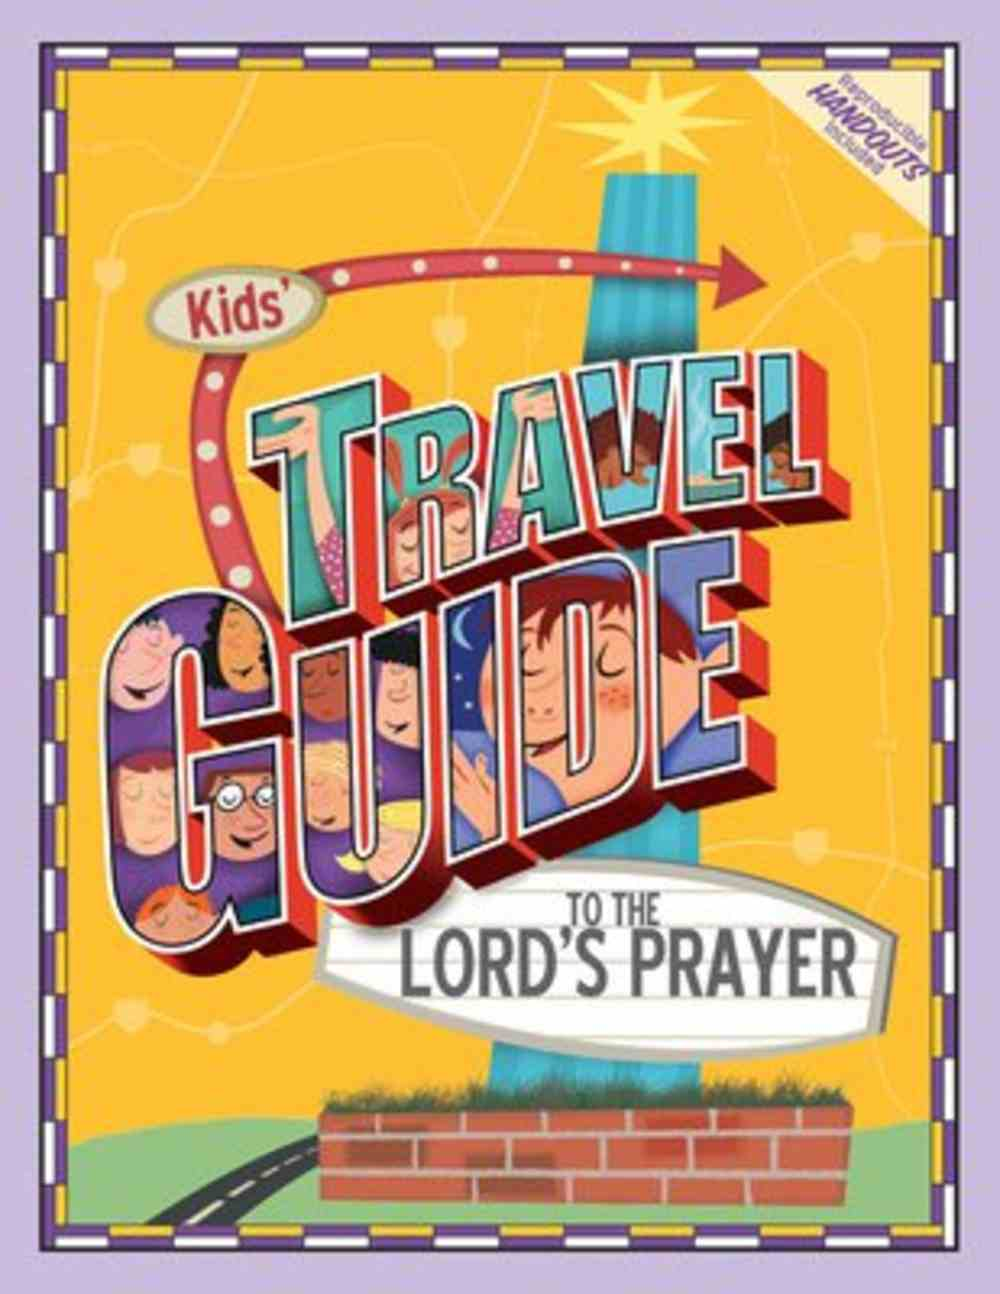 Kids' Travel Guide to the Lord's Prayer Paperback